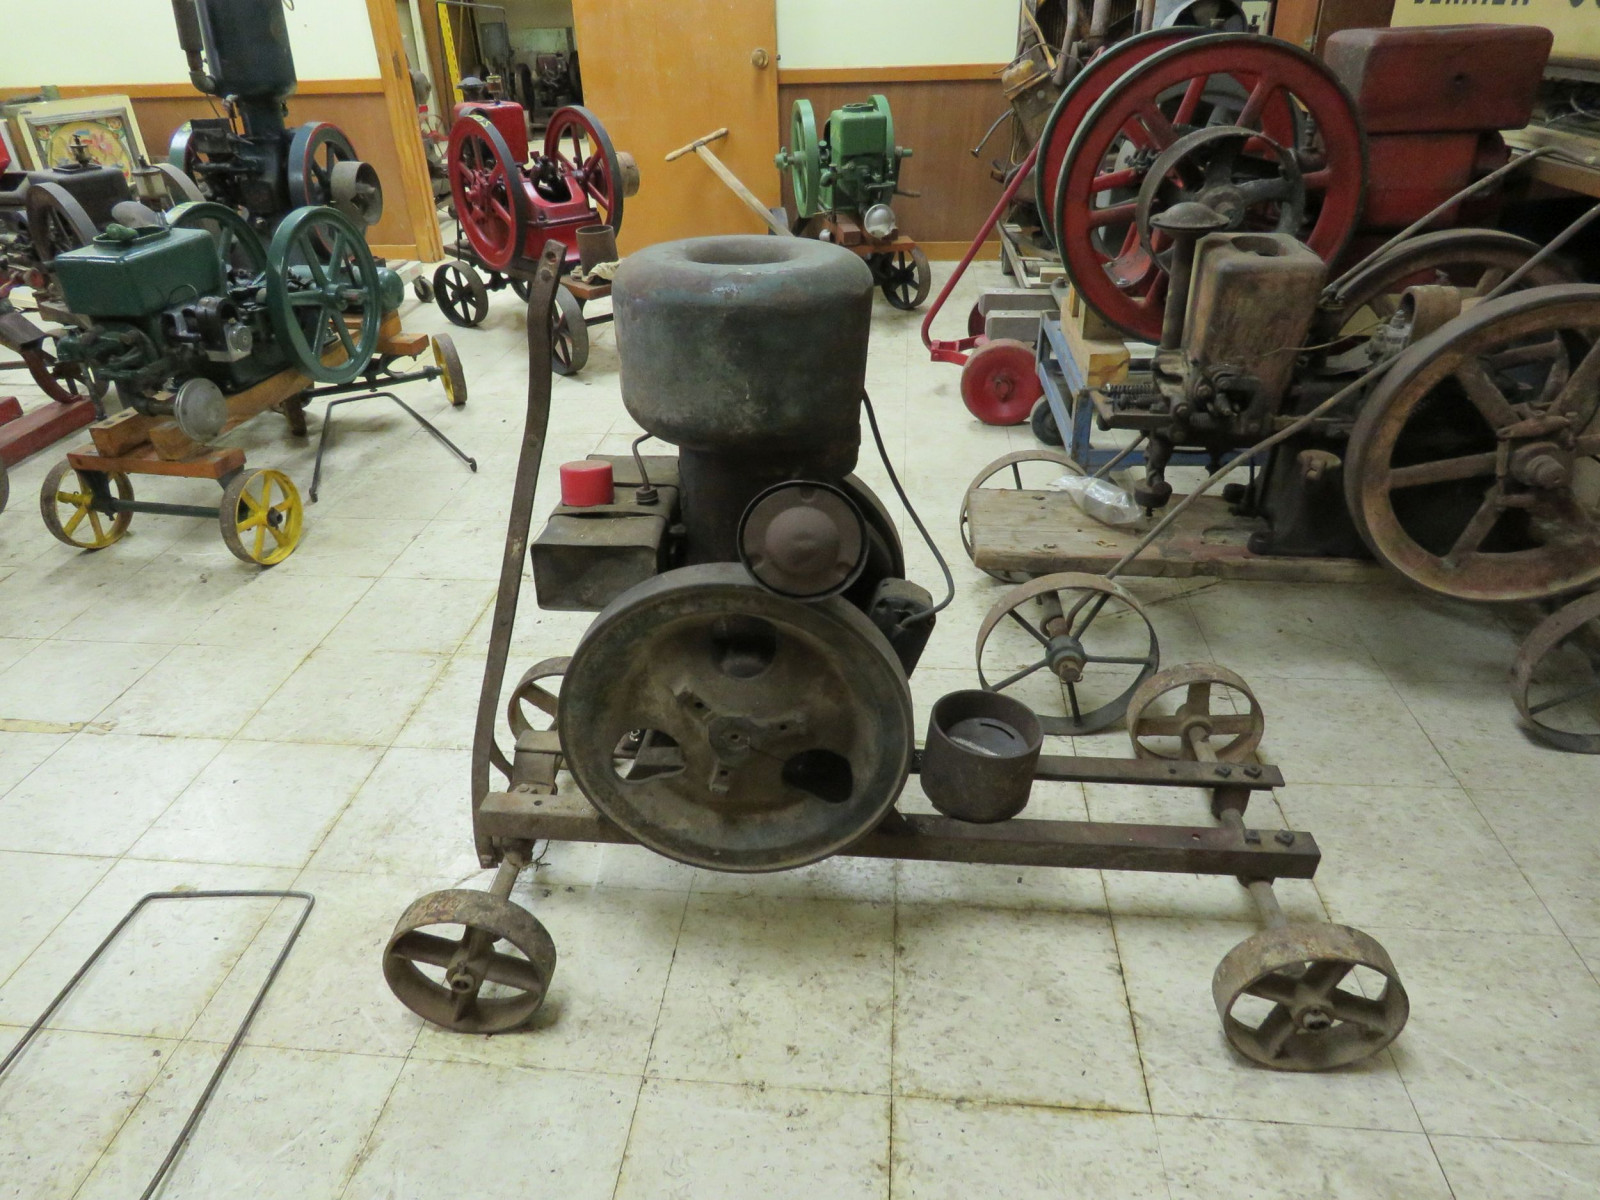 Fairbanks Morse Eclipse 4 hp Stationary Gas engine - Image 3